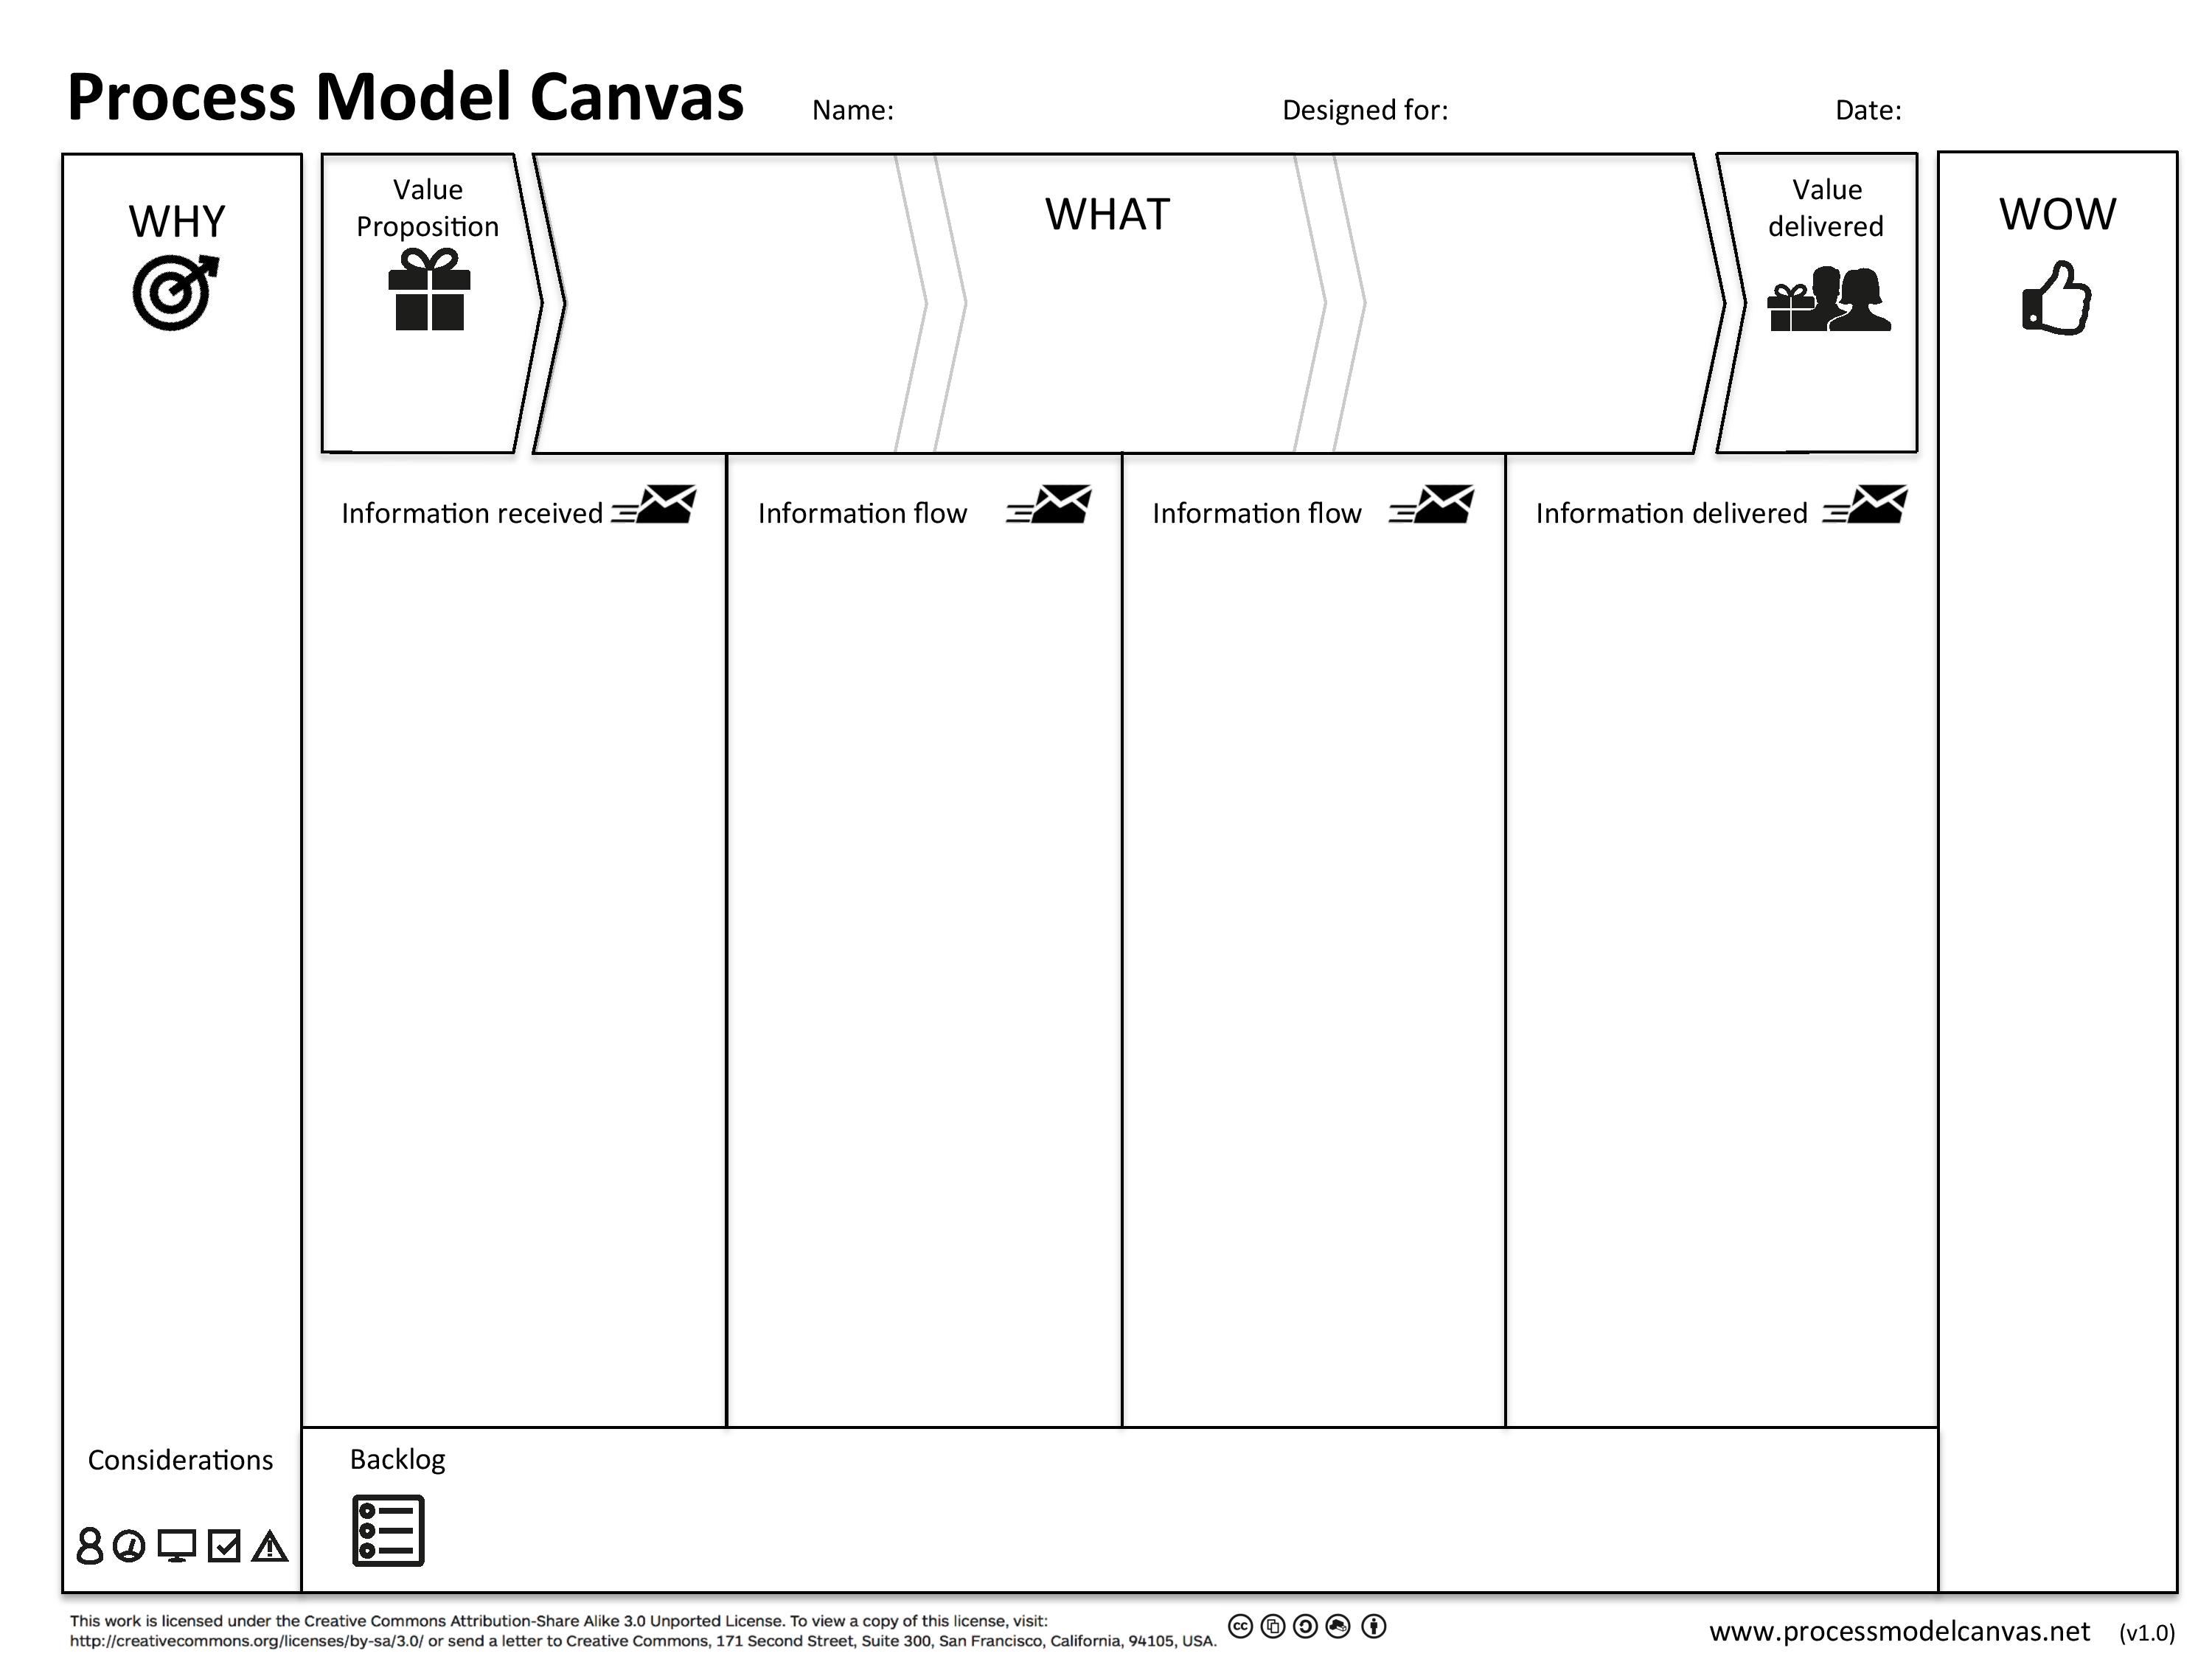 Process Model Canvas 1.1